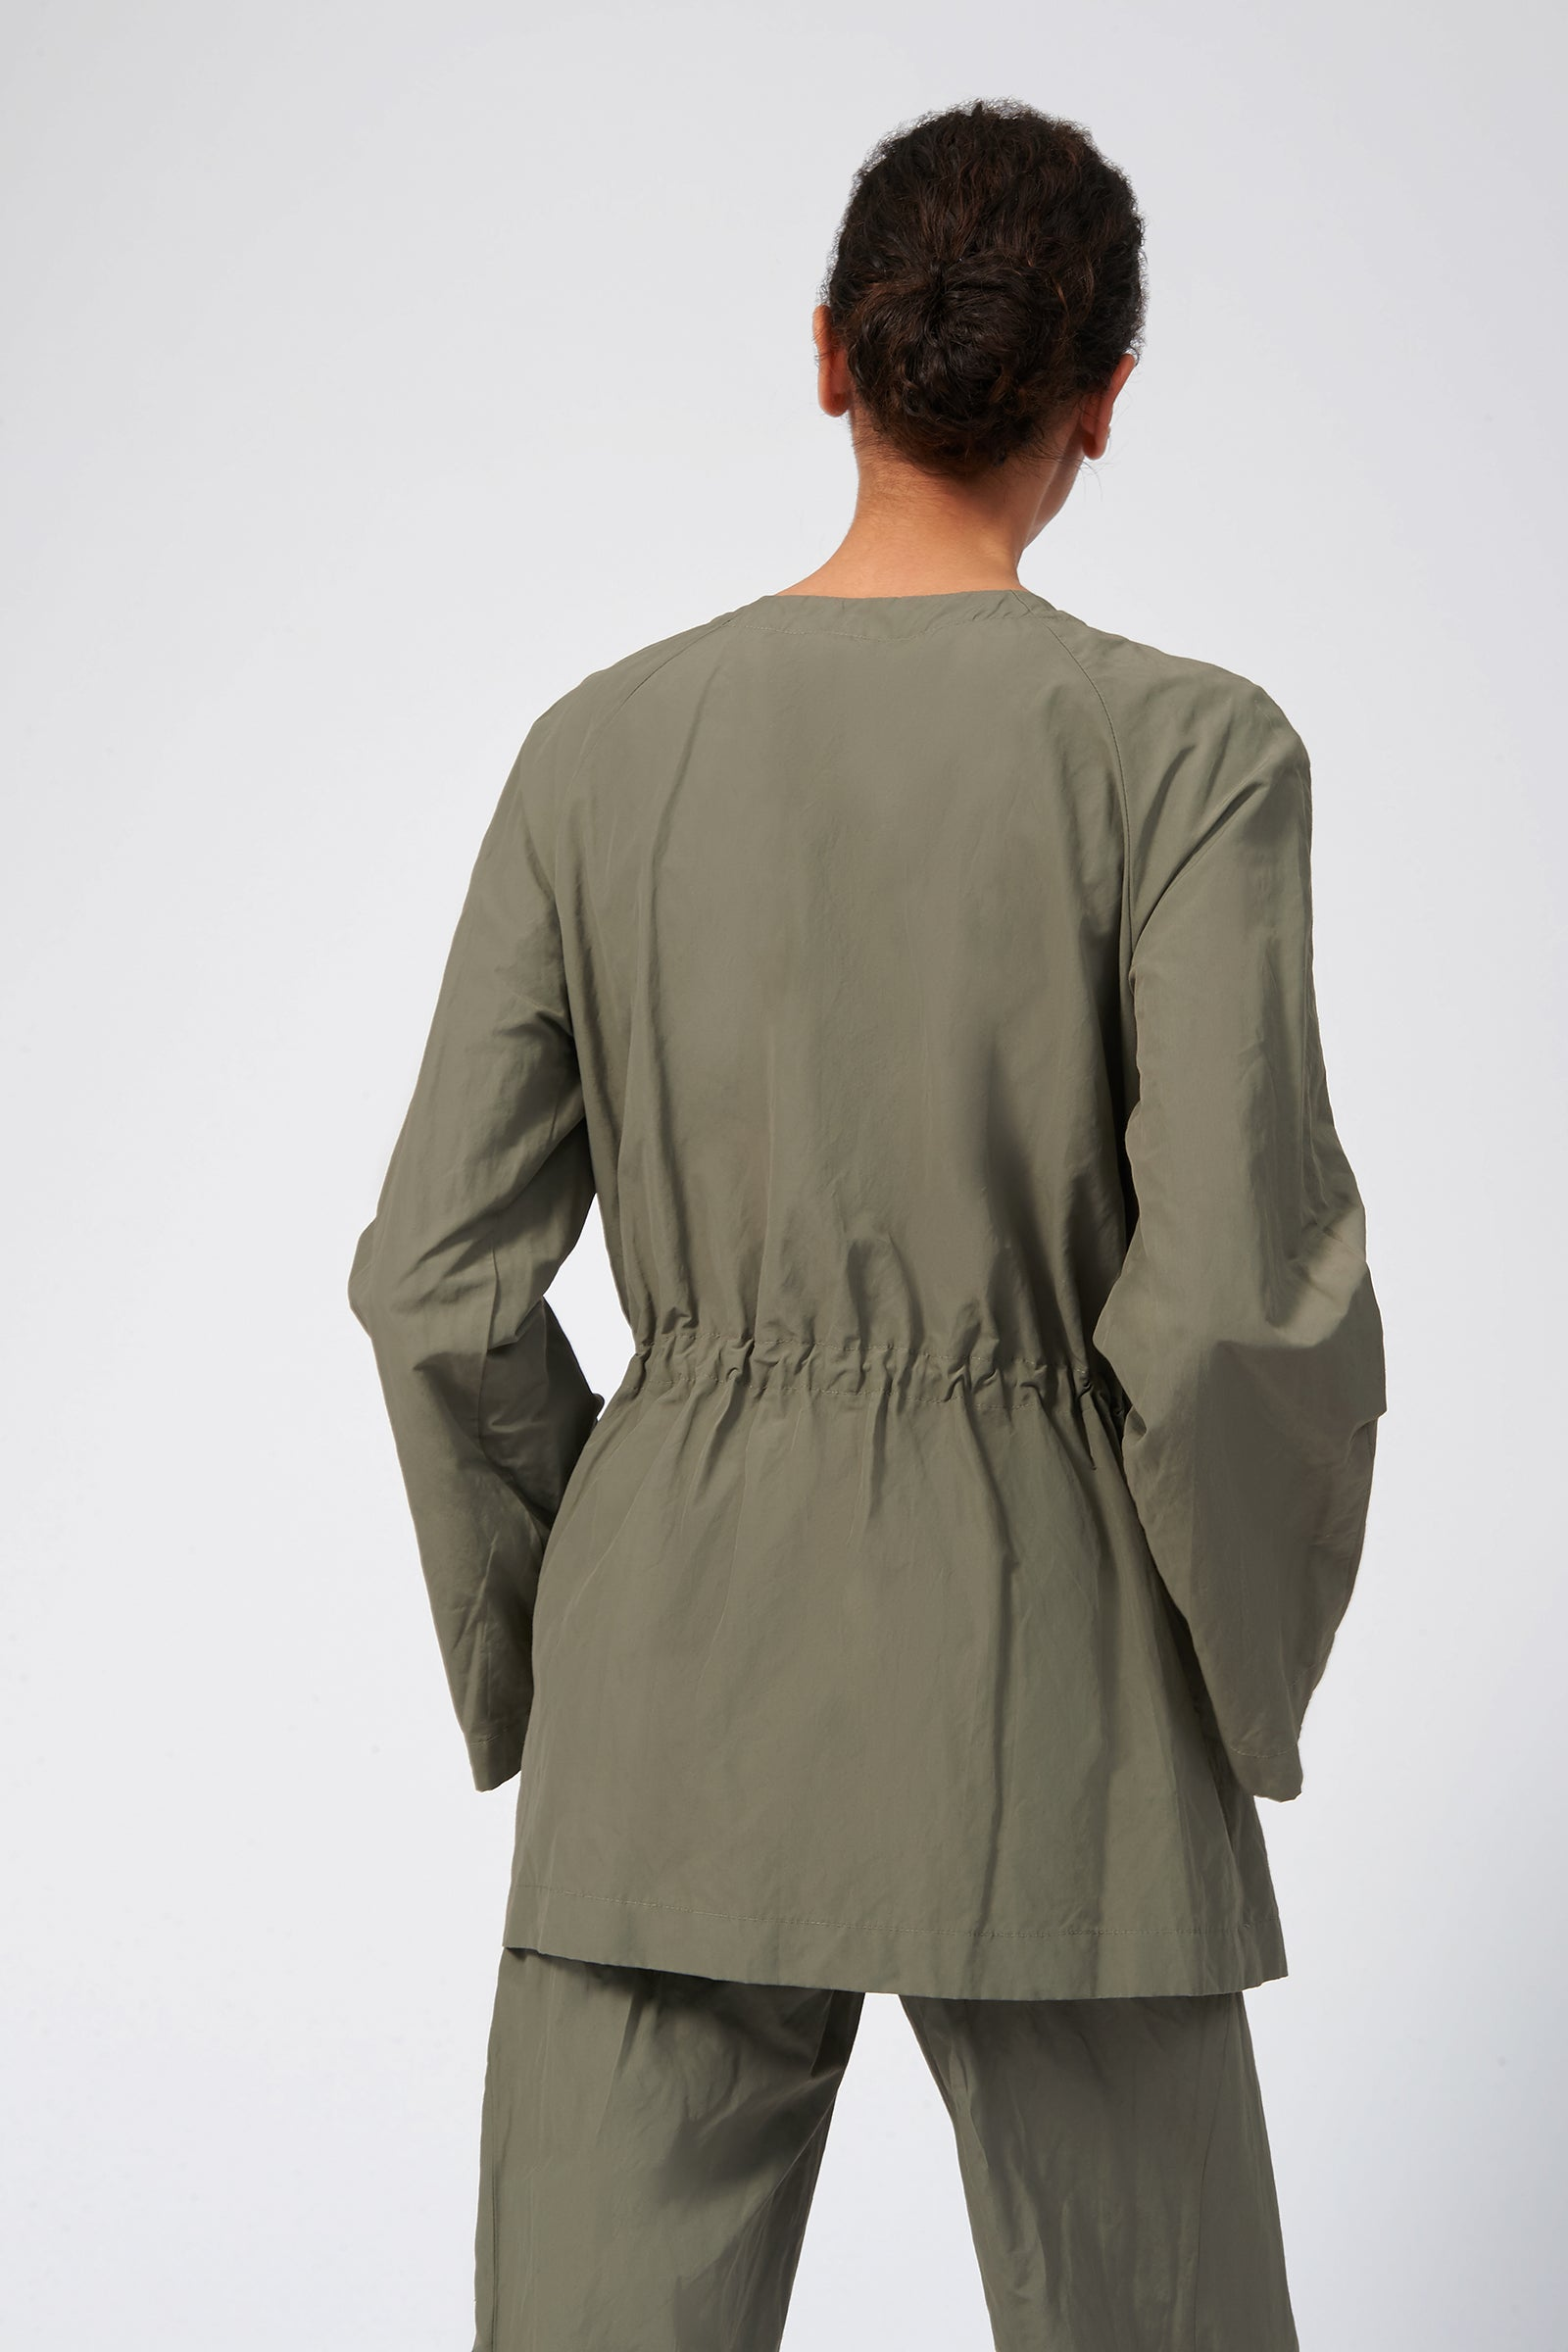 Kal Rieman Cotton Nylon Cinch Jacket in Olive on Model Back View